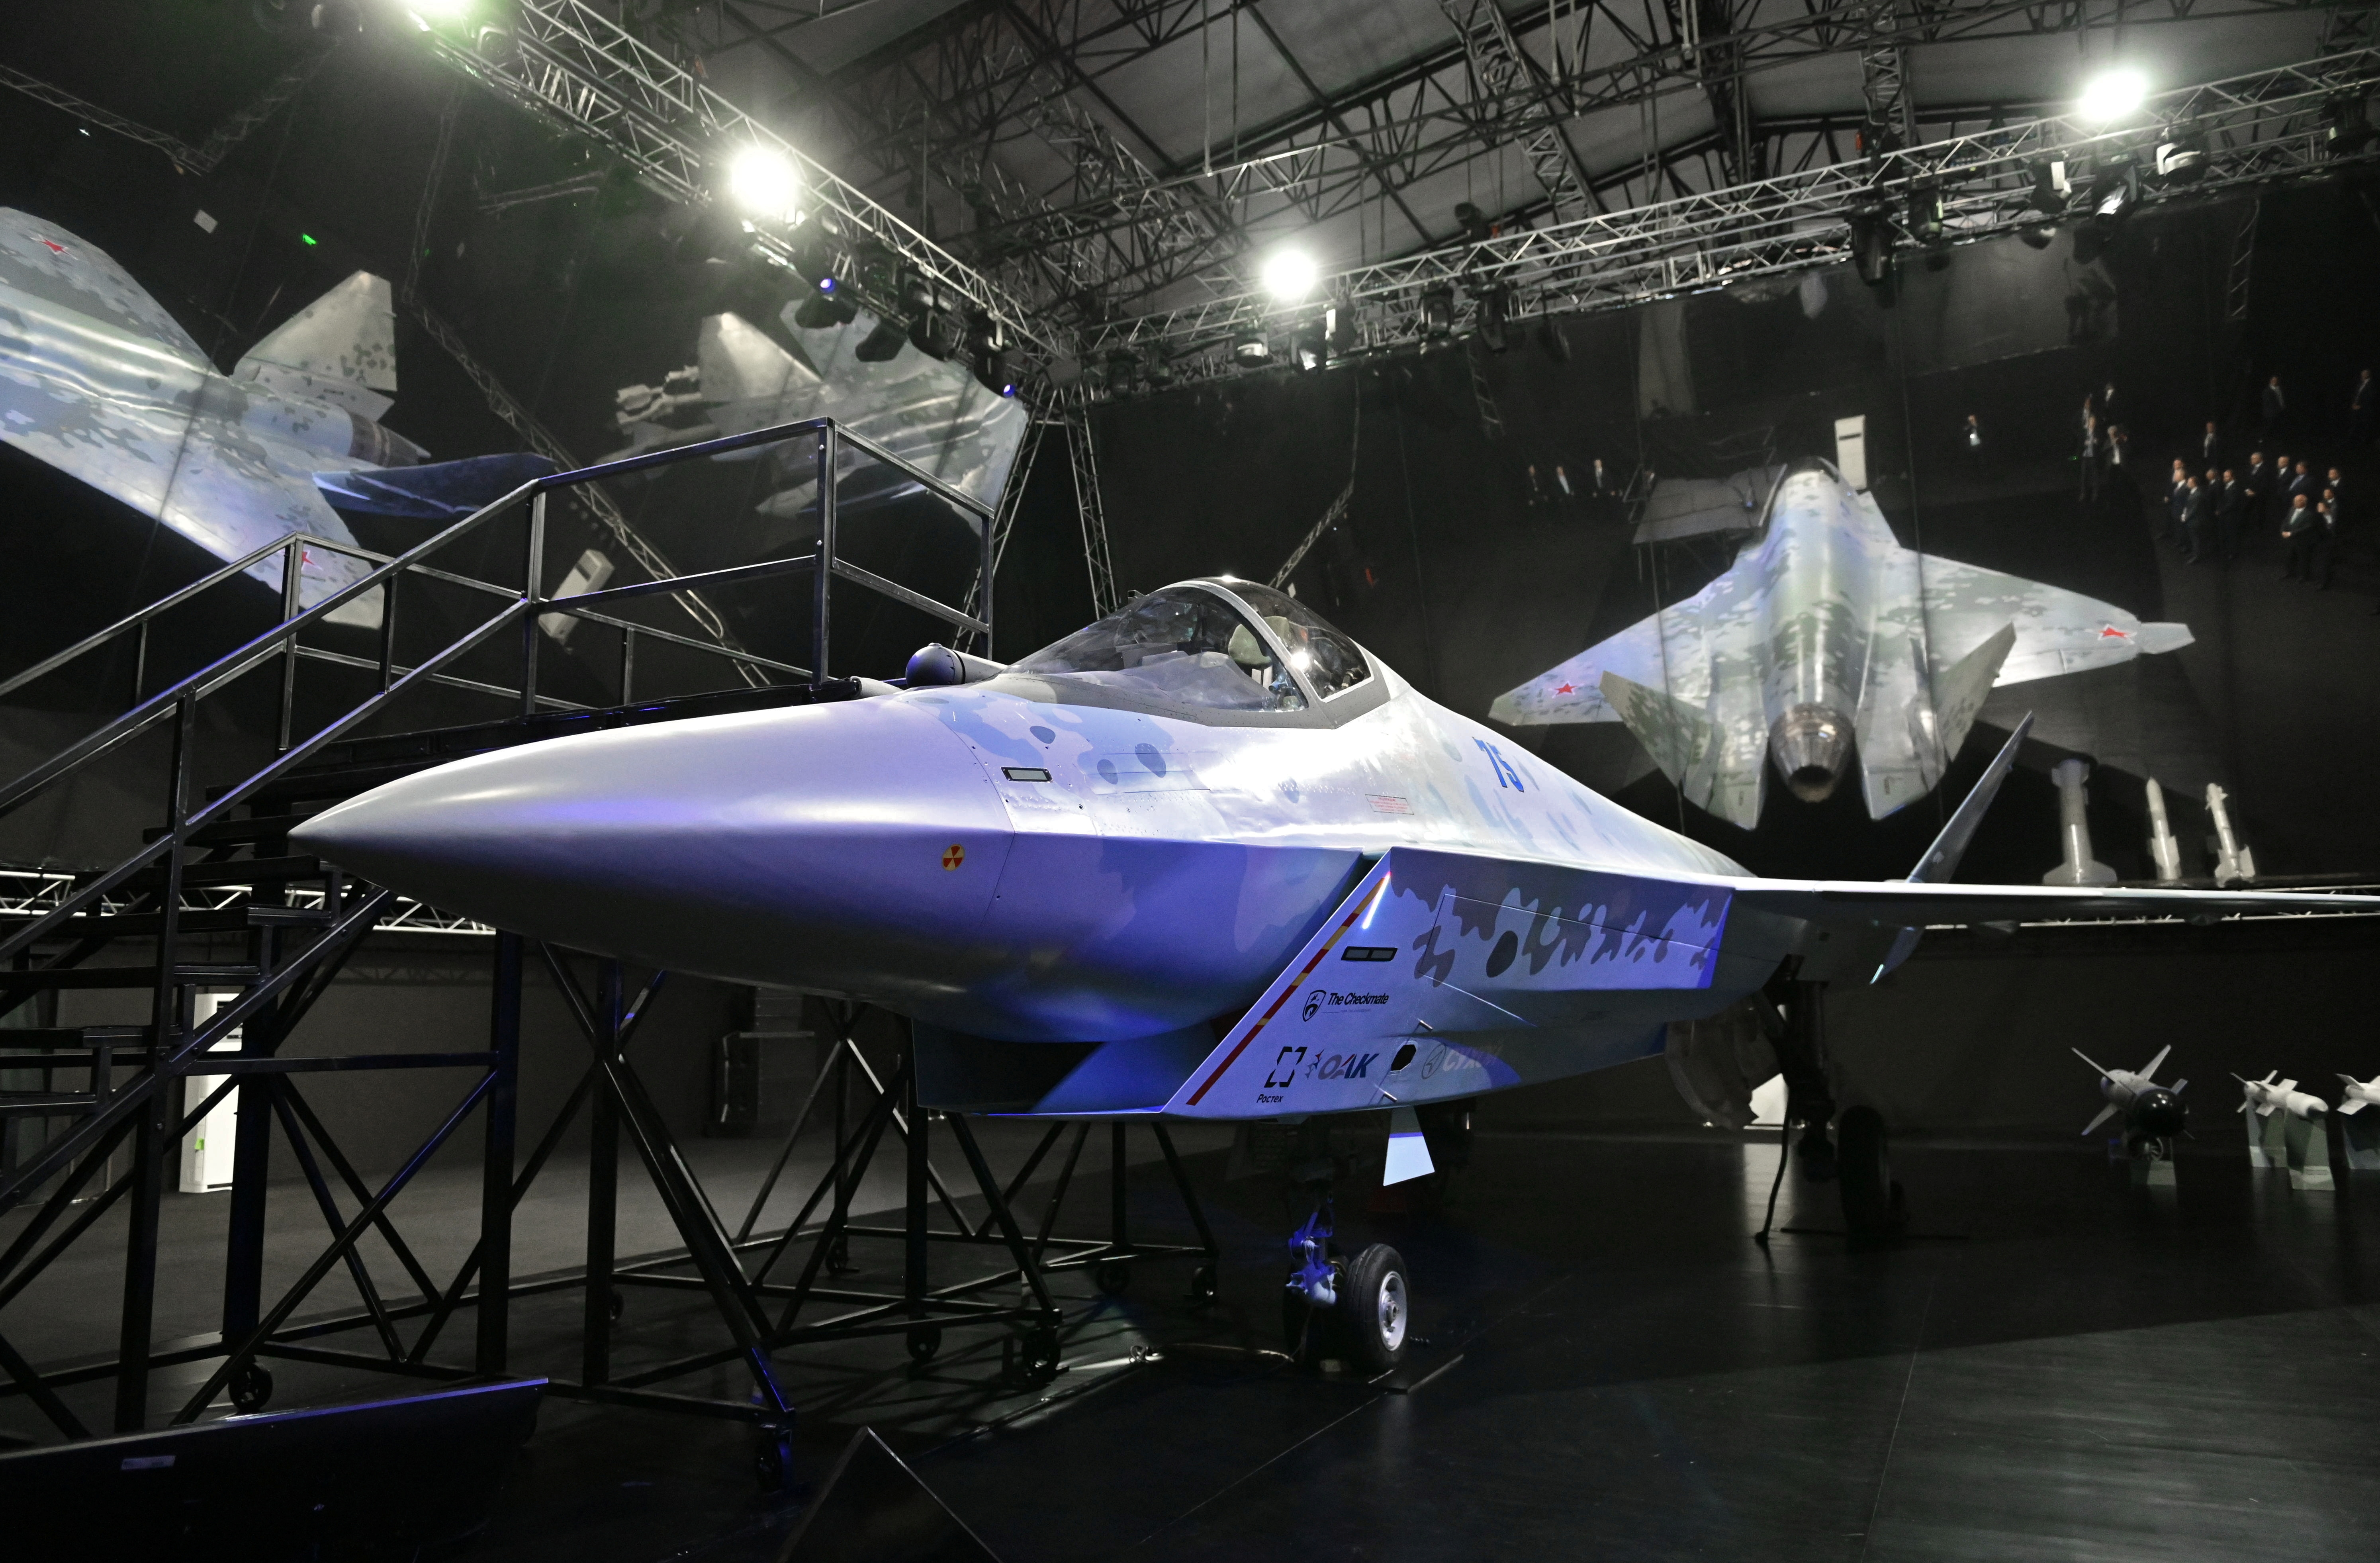 Checkmate, new Sukhoi fifth-generation stealth fighter jet is seen during an opening ceremony of the MAKS-2021 air show in Zhukovsky, outside Moscow, Russia, July 20, 2021.  Sputnik/Alexei Nikolskyi/Kremlin via REUTERS